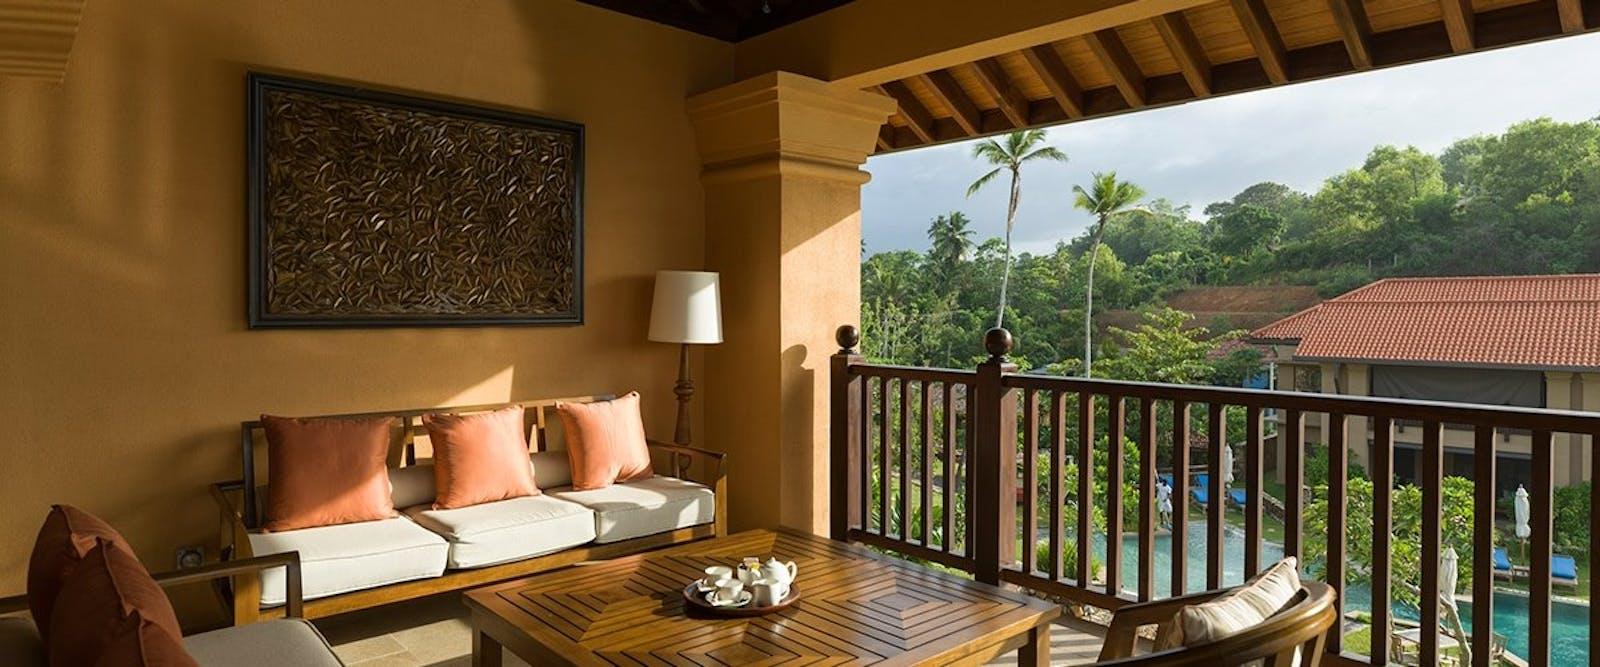 Master Suite Balcony at at Cape Weligama, Sri Lanka